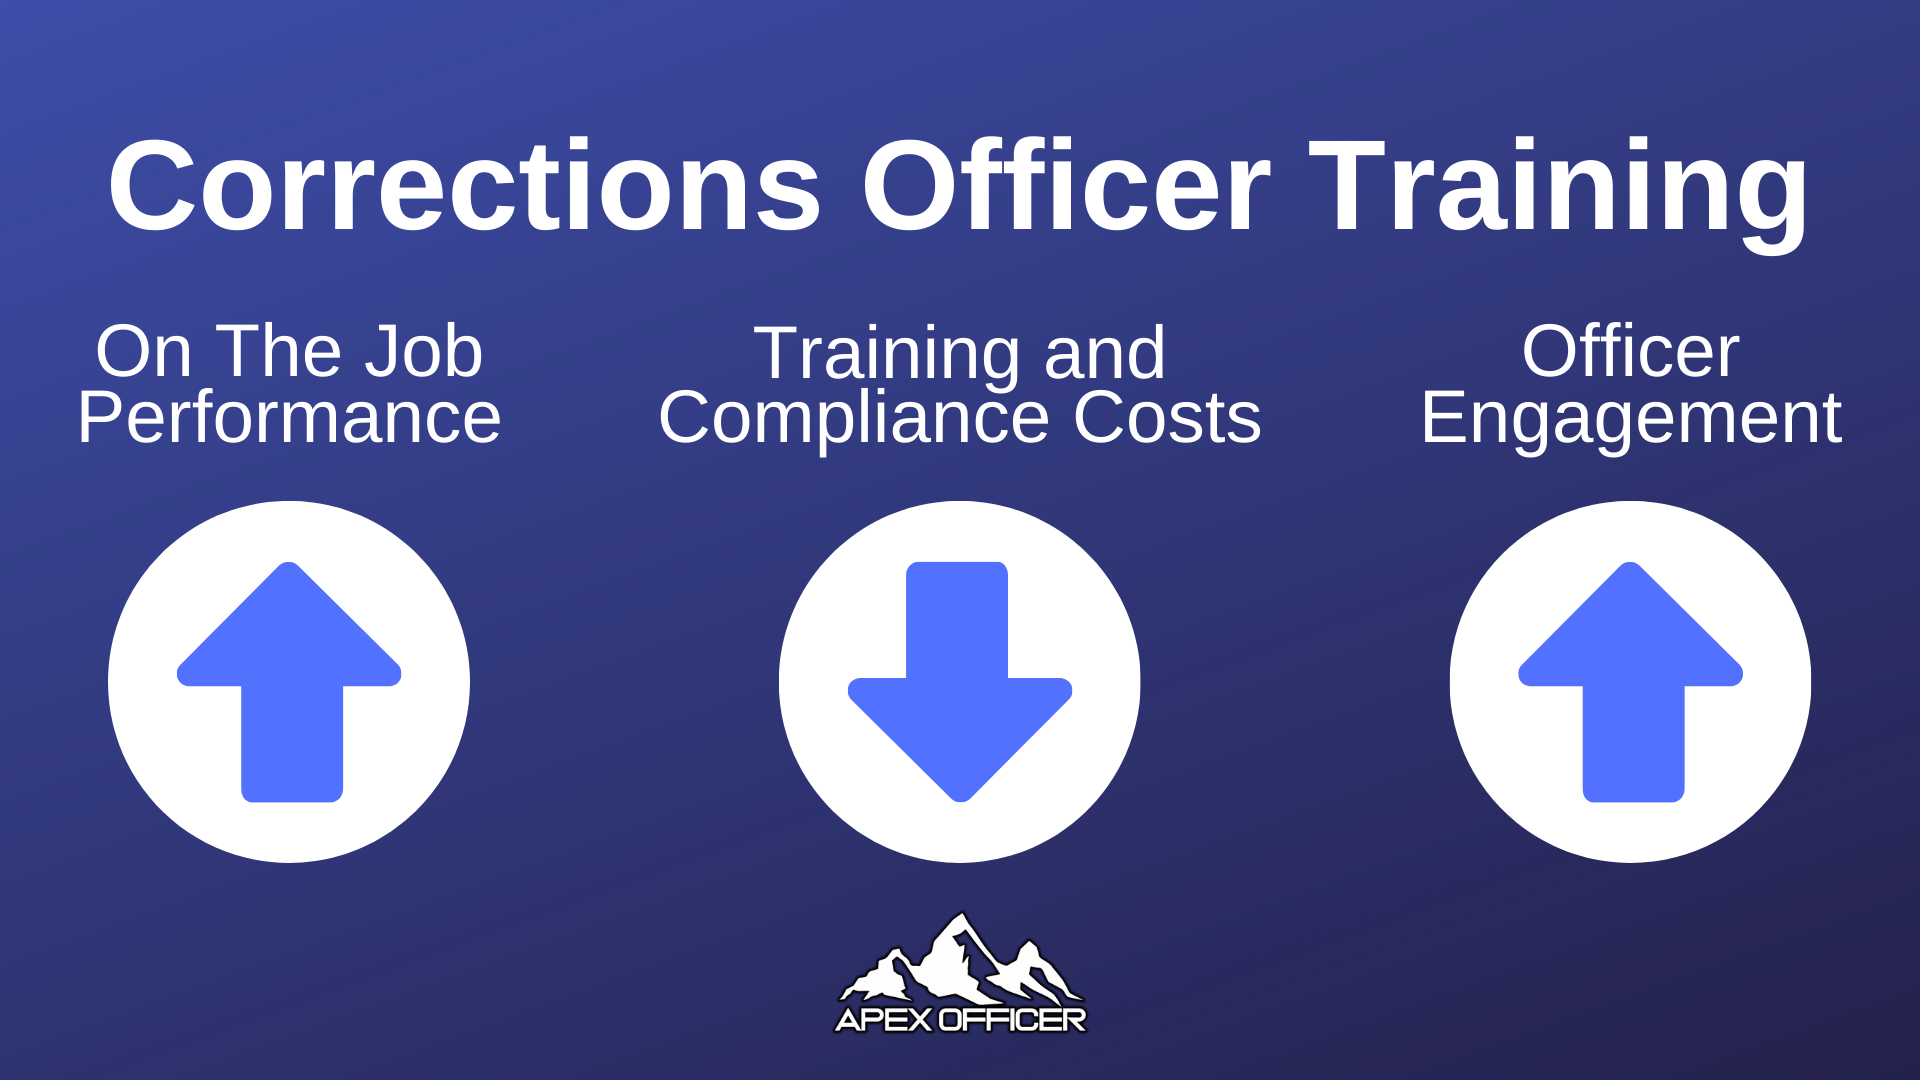 Apex Officer Launches Corrections Officer Training Simulator